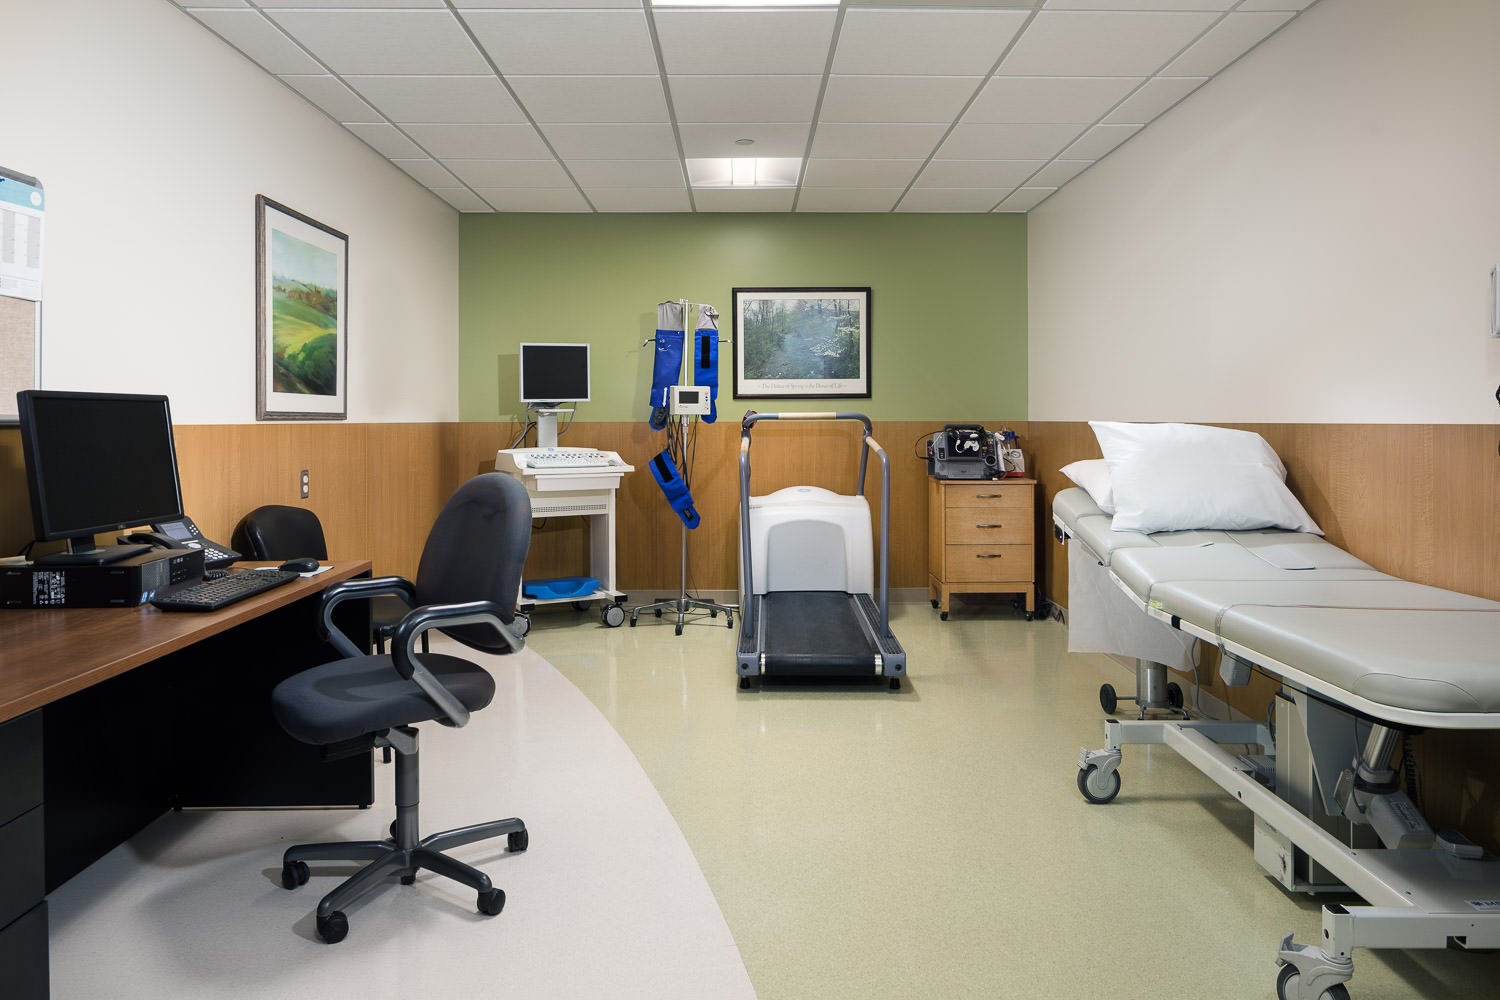 An interior photo of an exam room in the new Northwestern Medical Center Clinics building in St. Albans Vermont by Studio SB